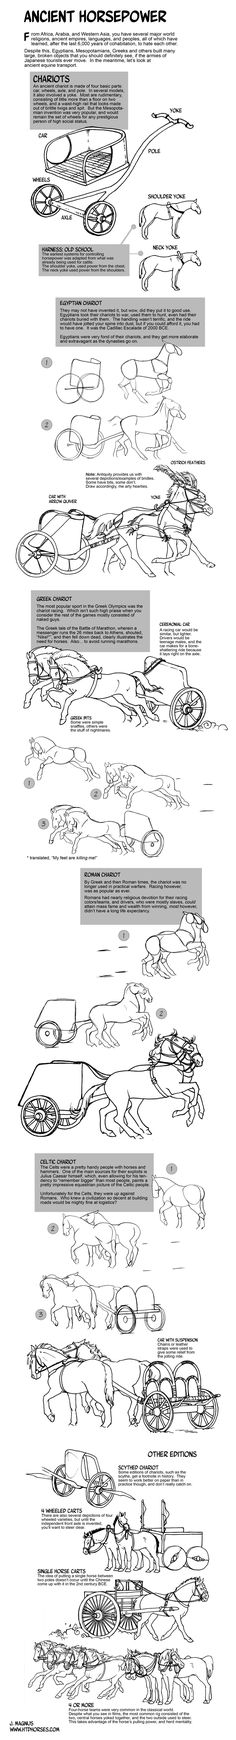 Drawing Ancient Chariots by sketcherjak.deviantart.com on @deviantART